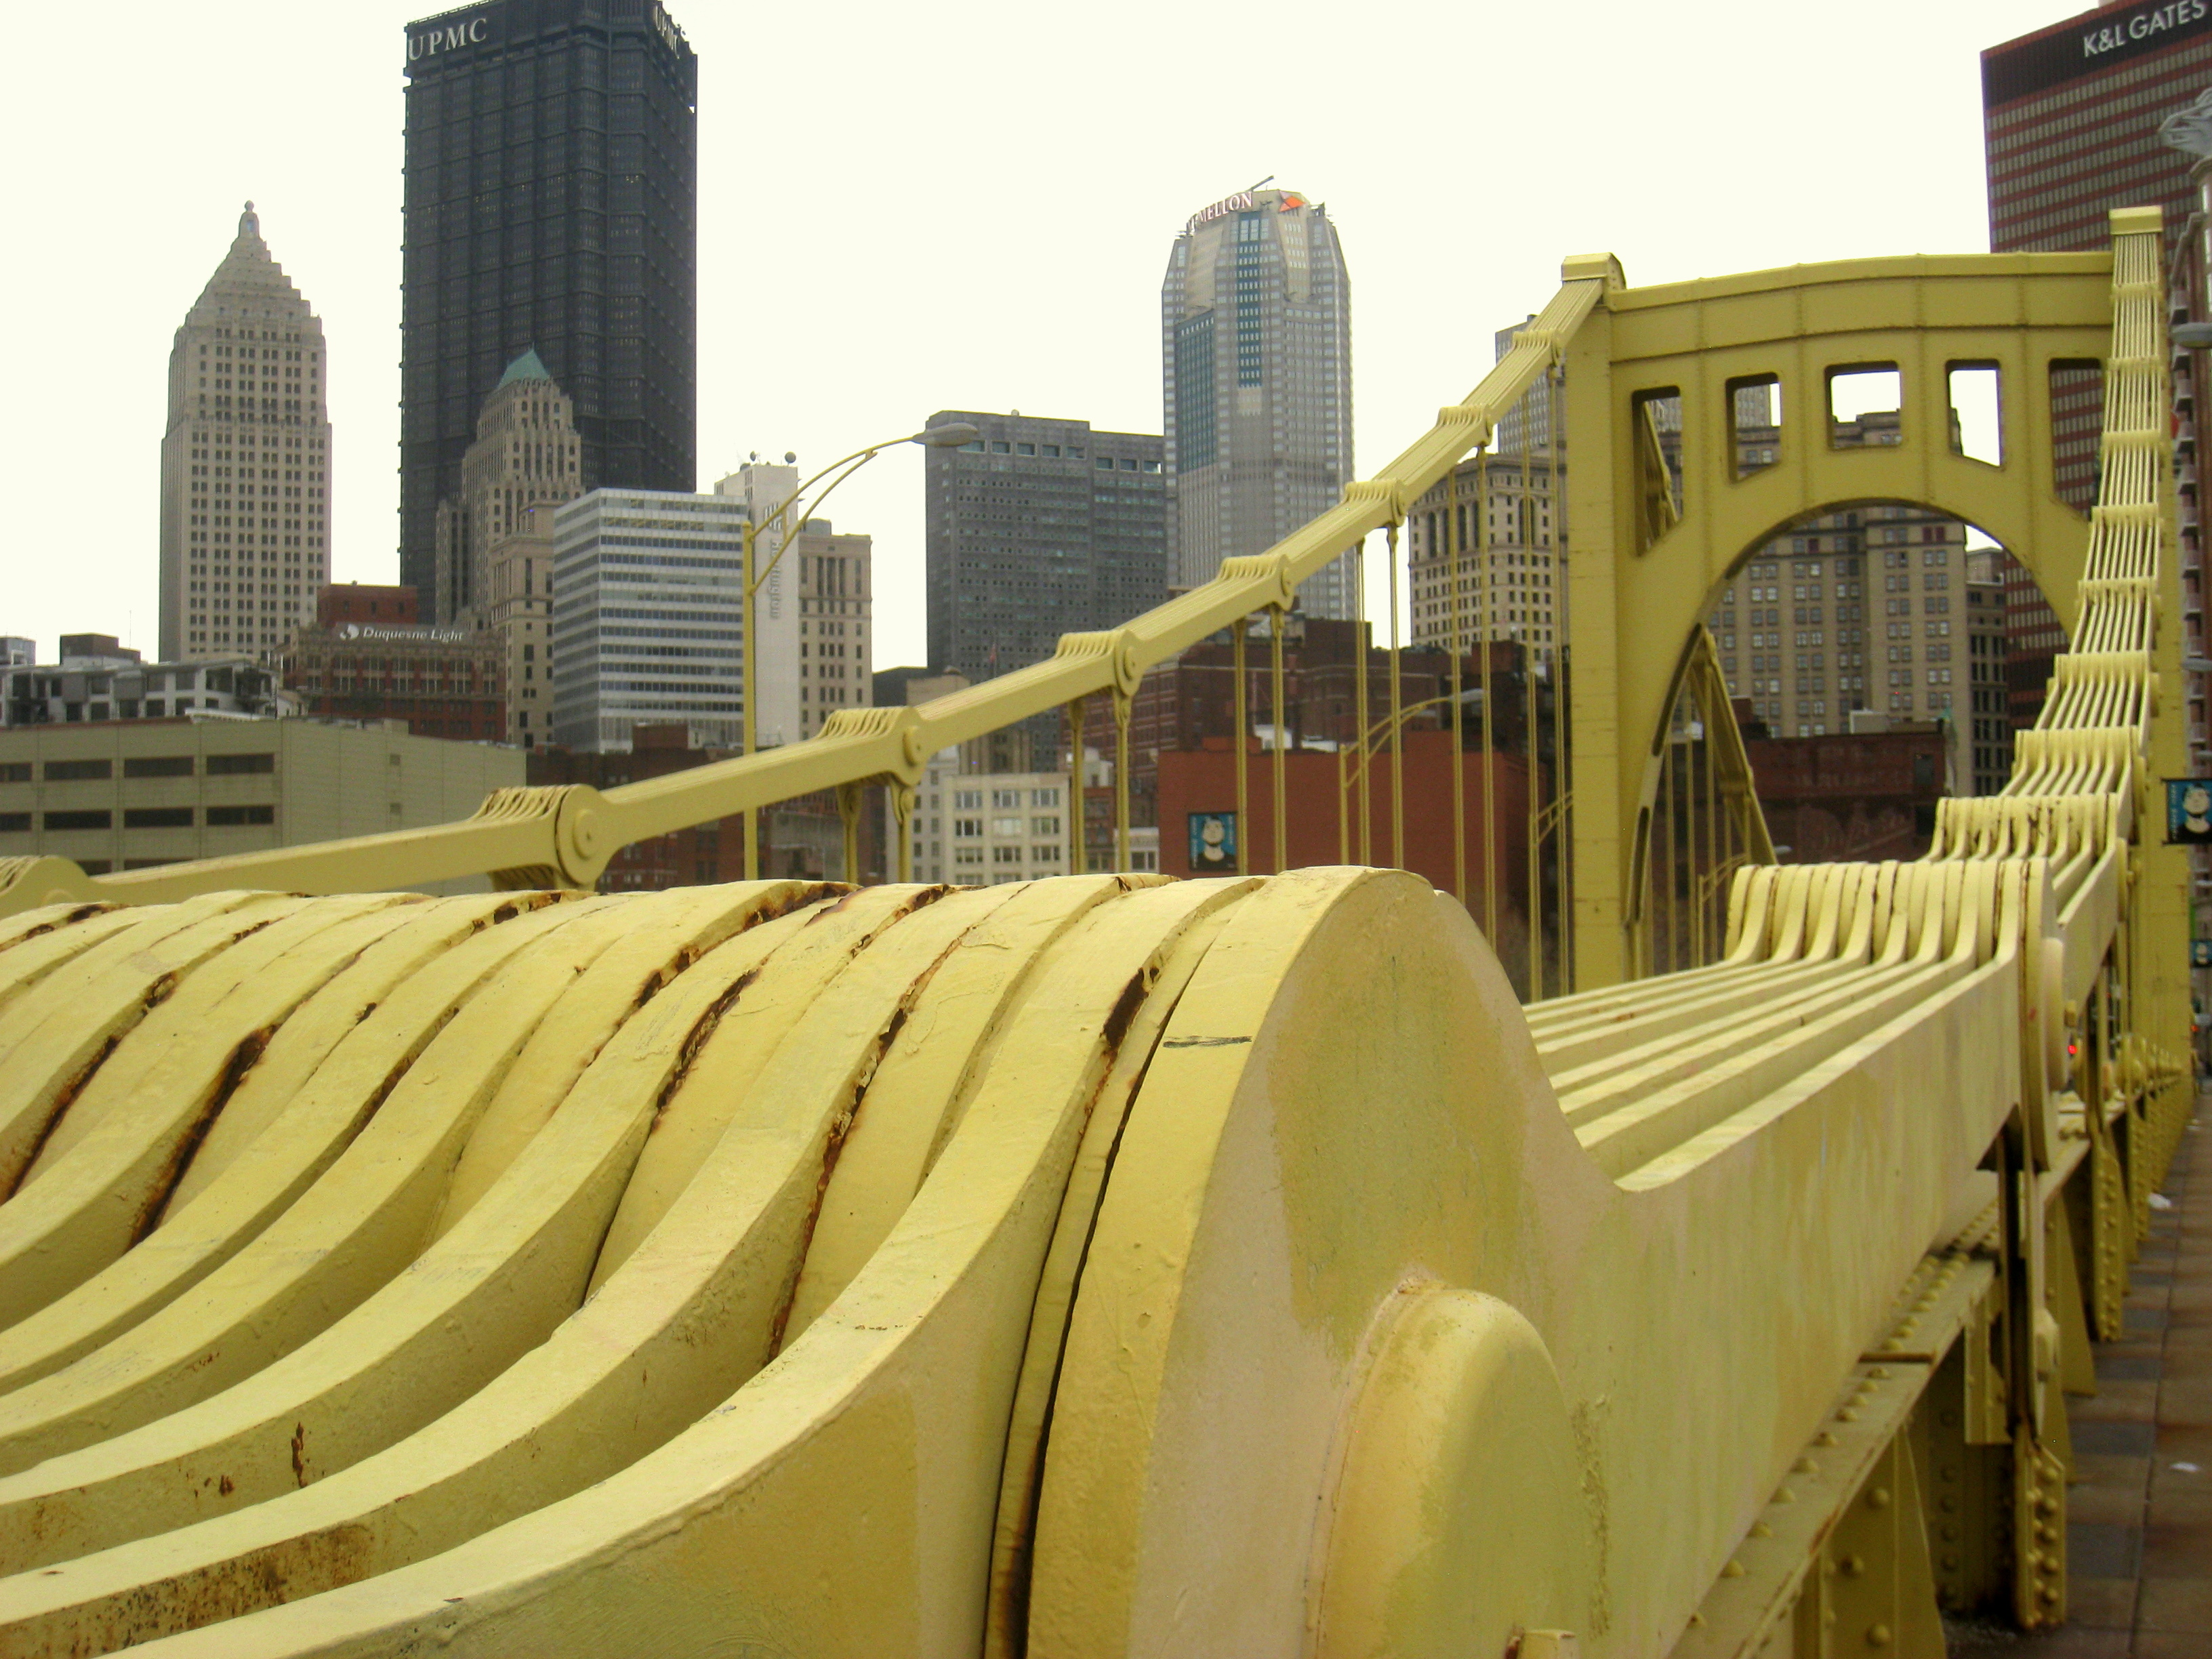 A close-up of one of the Warhol Bridge's eye-bar catenaries, which were used rather than cables in its construction.